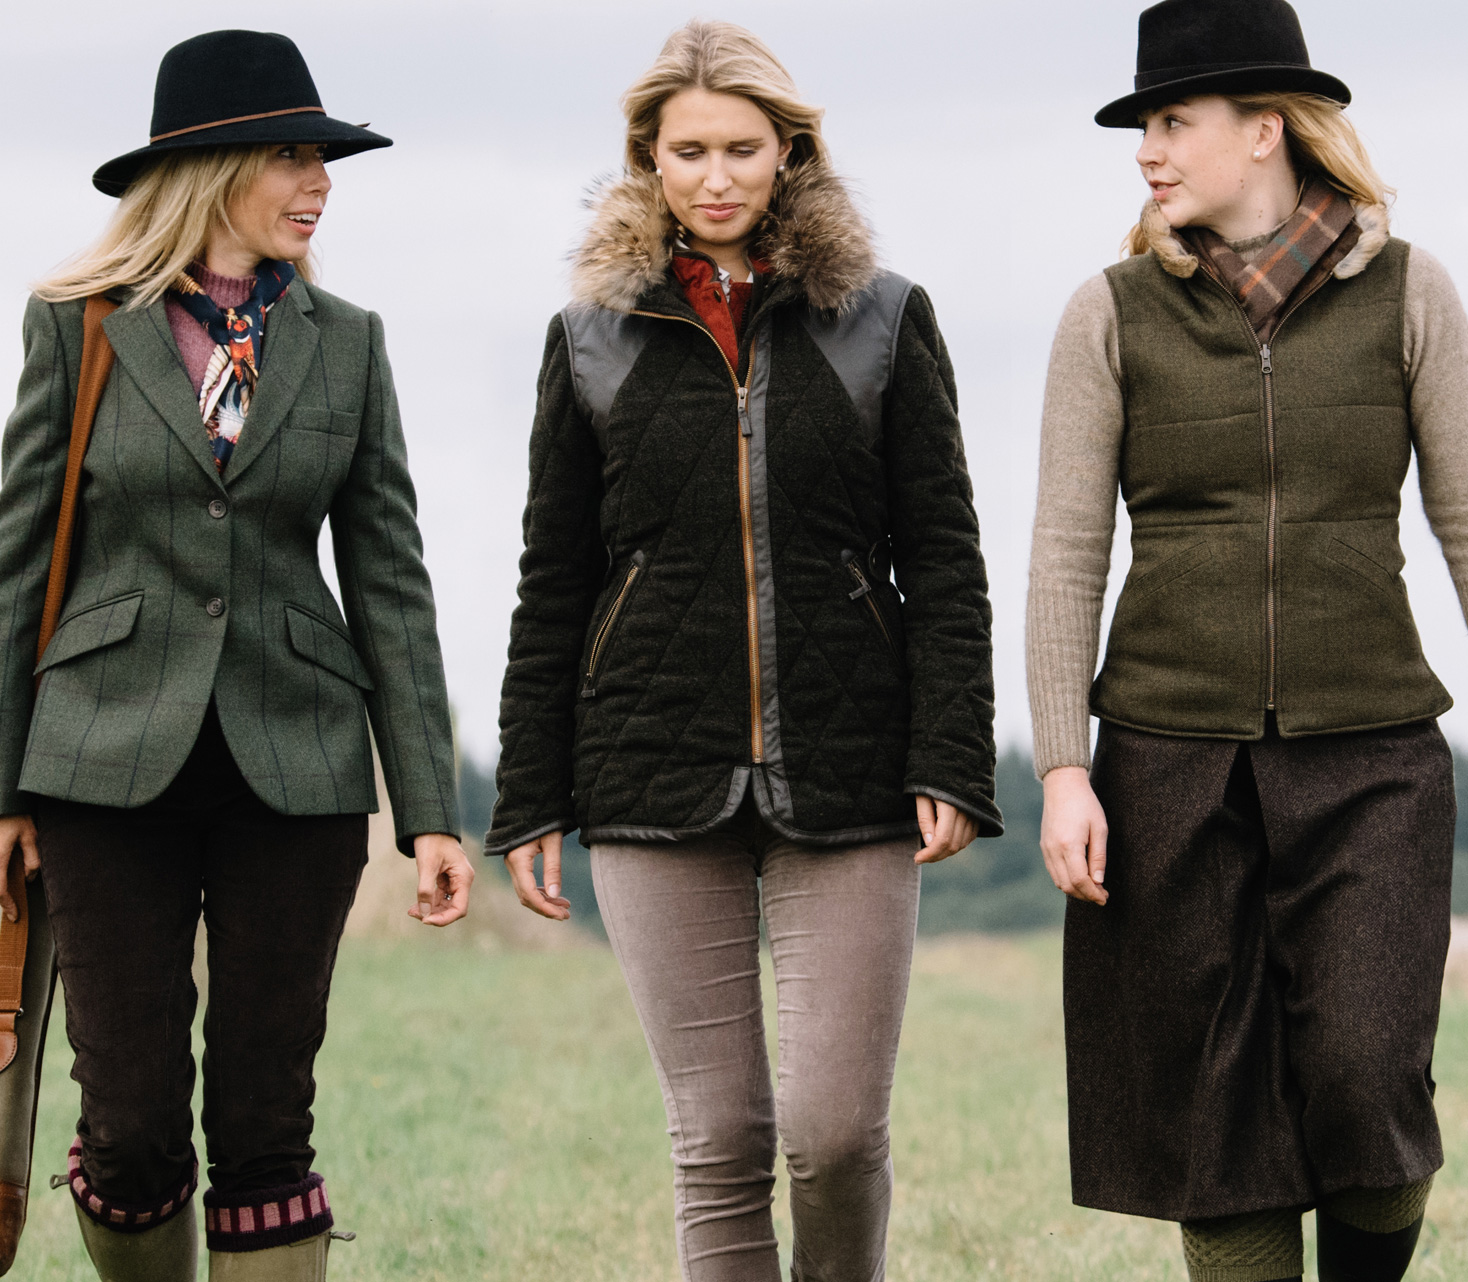 Ladies Shooting Clothing